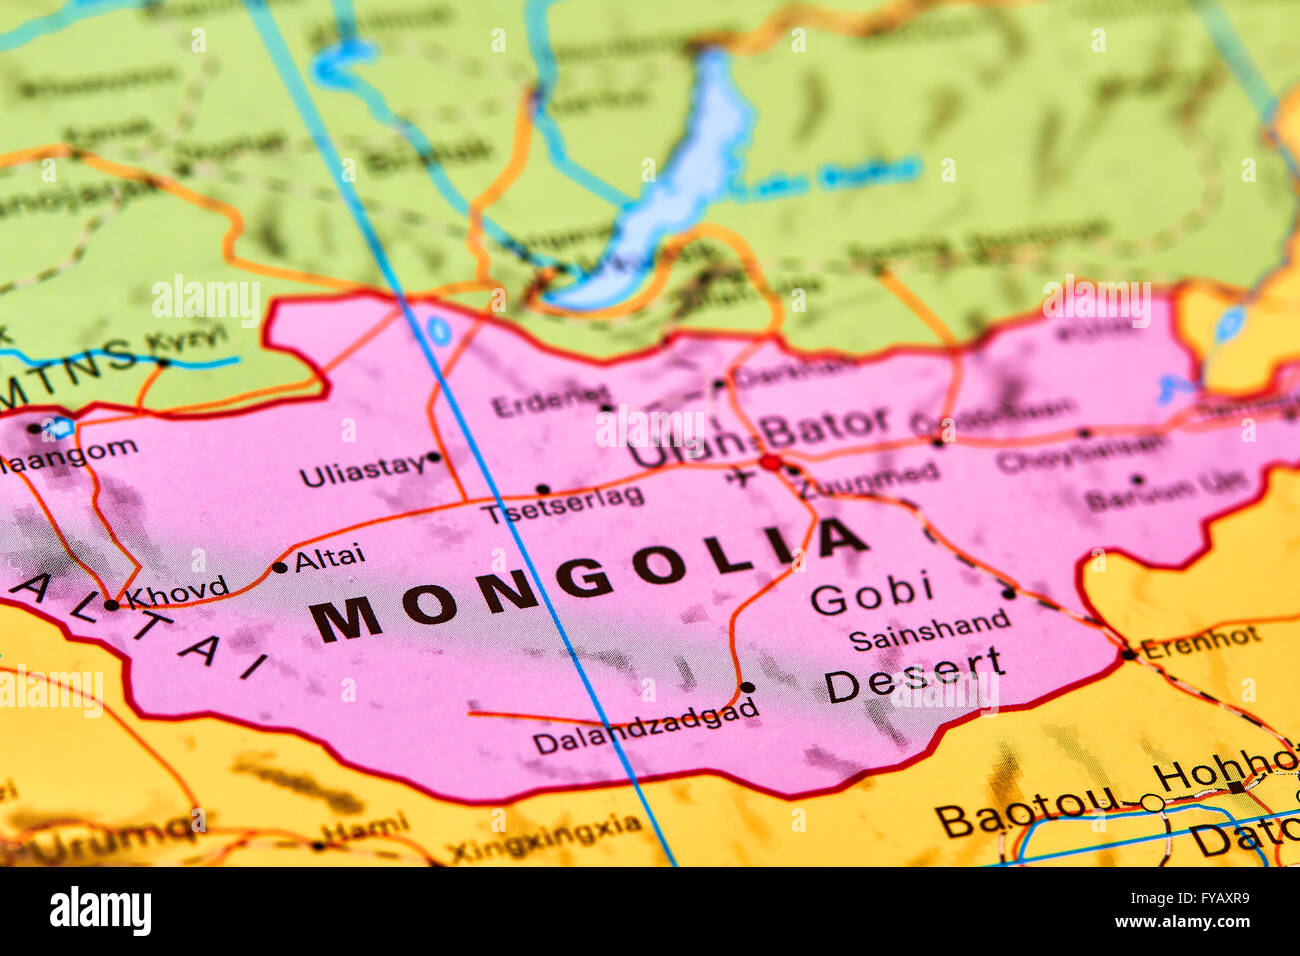 Mongolia country in asia on the world map stock photo 102888109 mongolia country in asia on the world map gumiabroncs Gallery